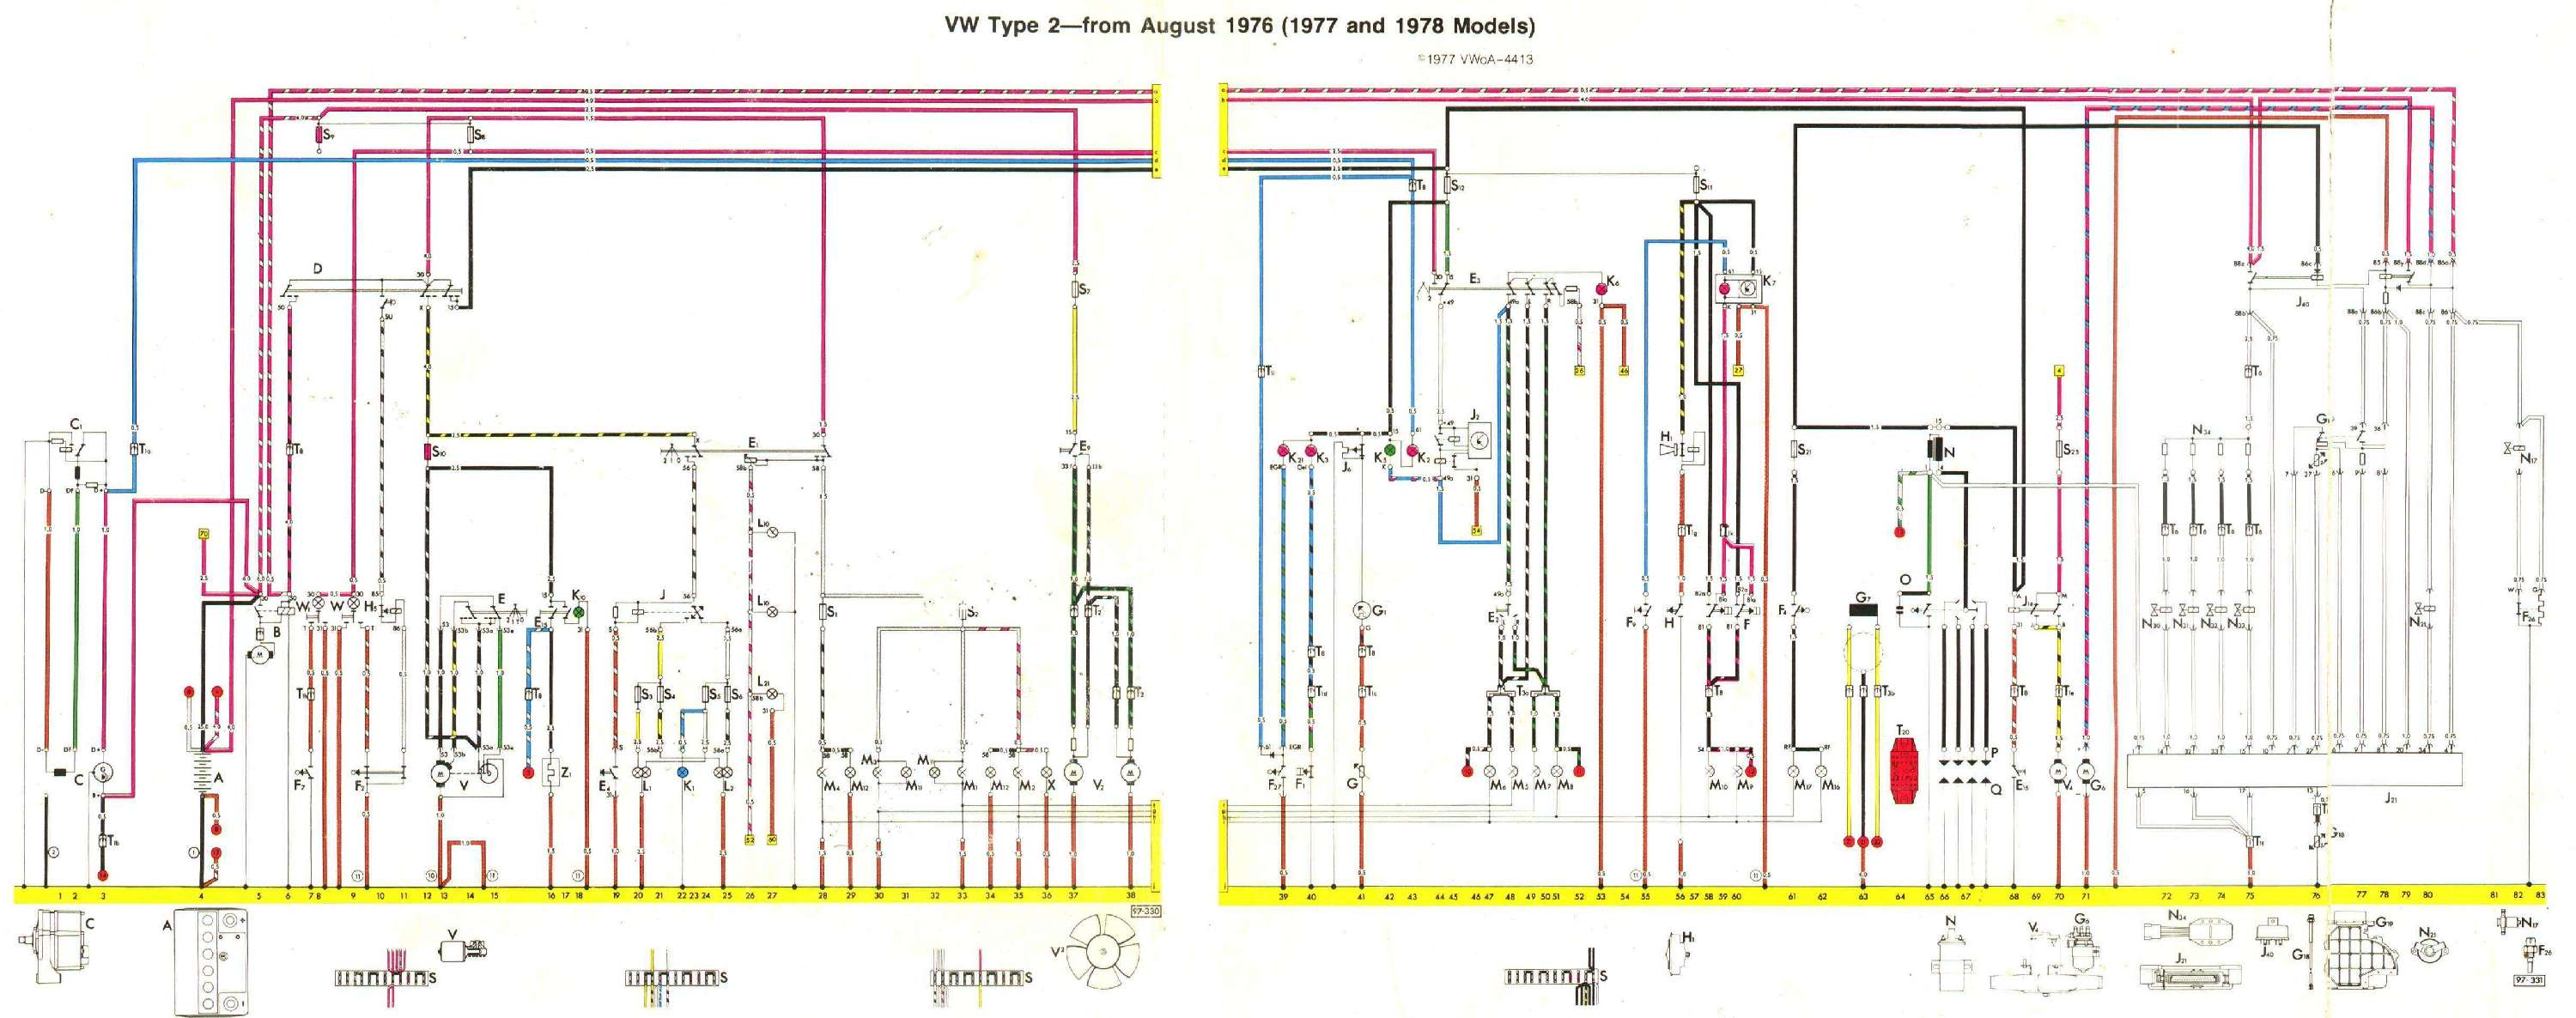 69 chevelle wiring diagram browning a5 parts baywindow fusebox layout august 1975 1976 1977 and 1978 models